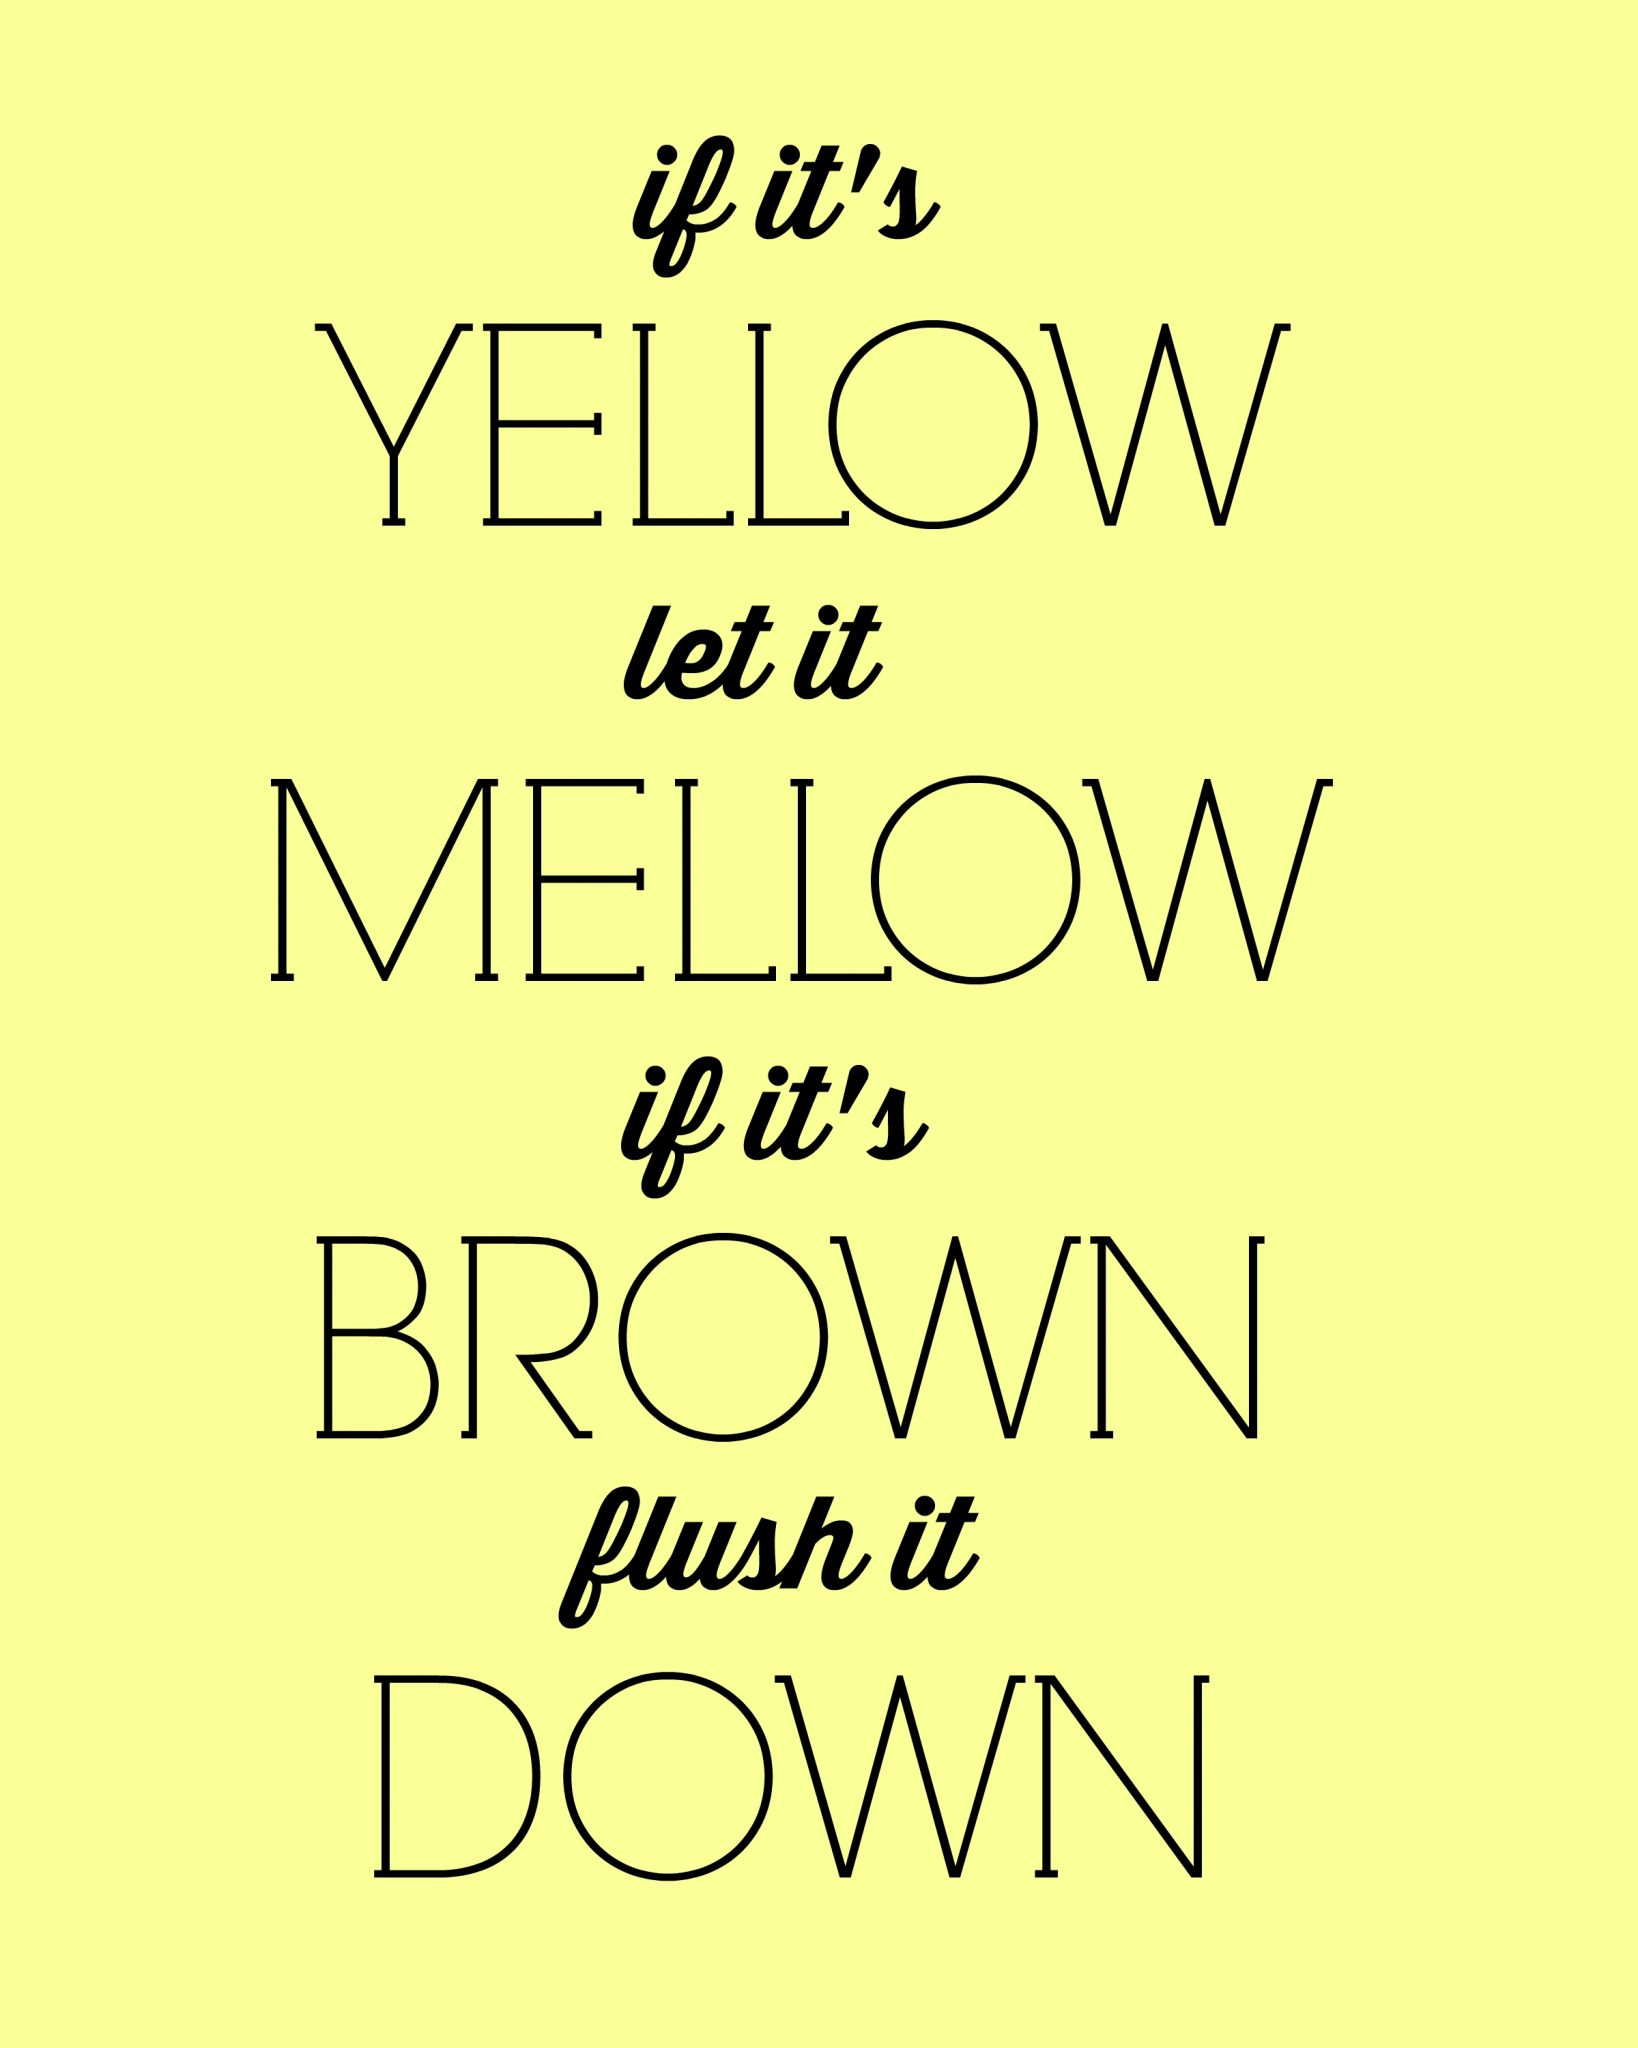 Free printable bathroom art inspired by Meet the Fockers! If it's yellow let it mellow if it's brown flush it down.